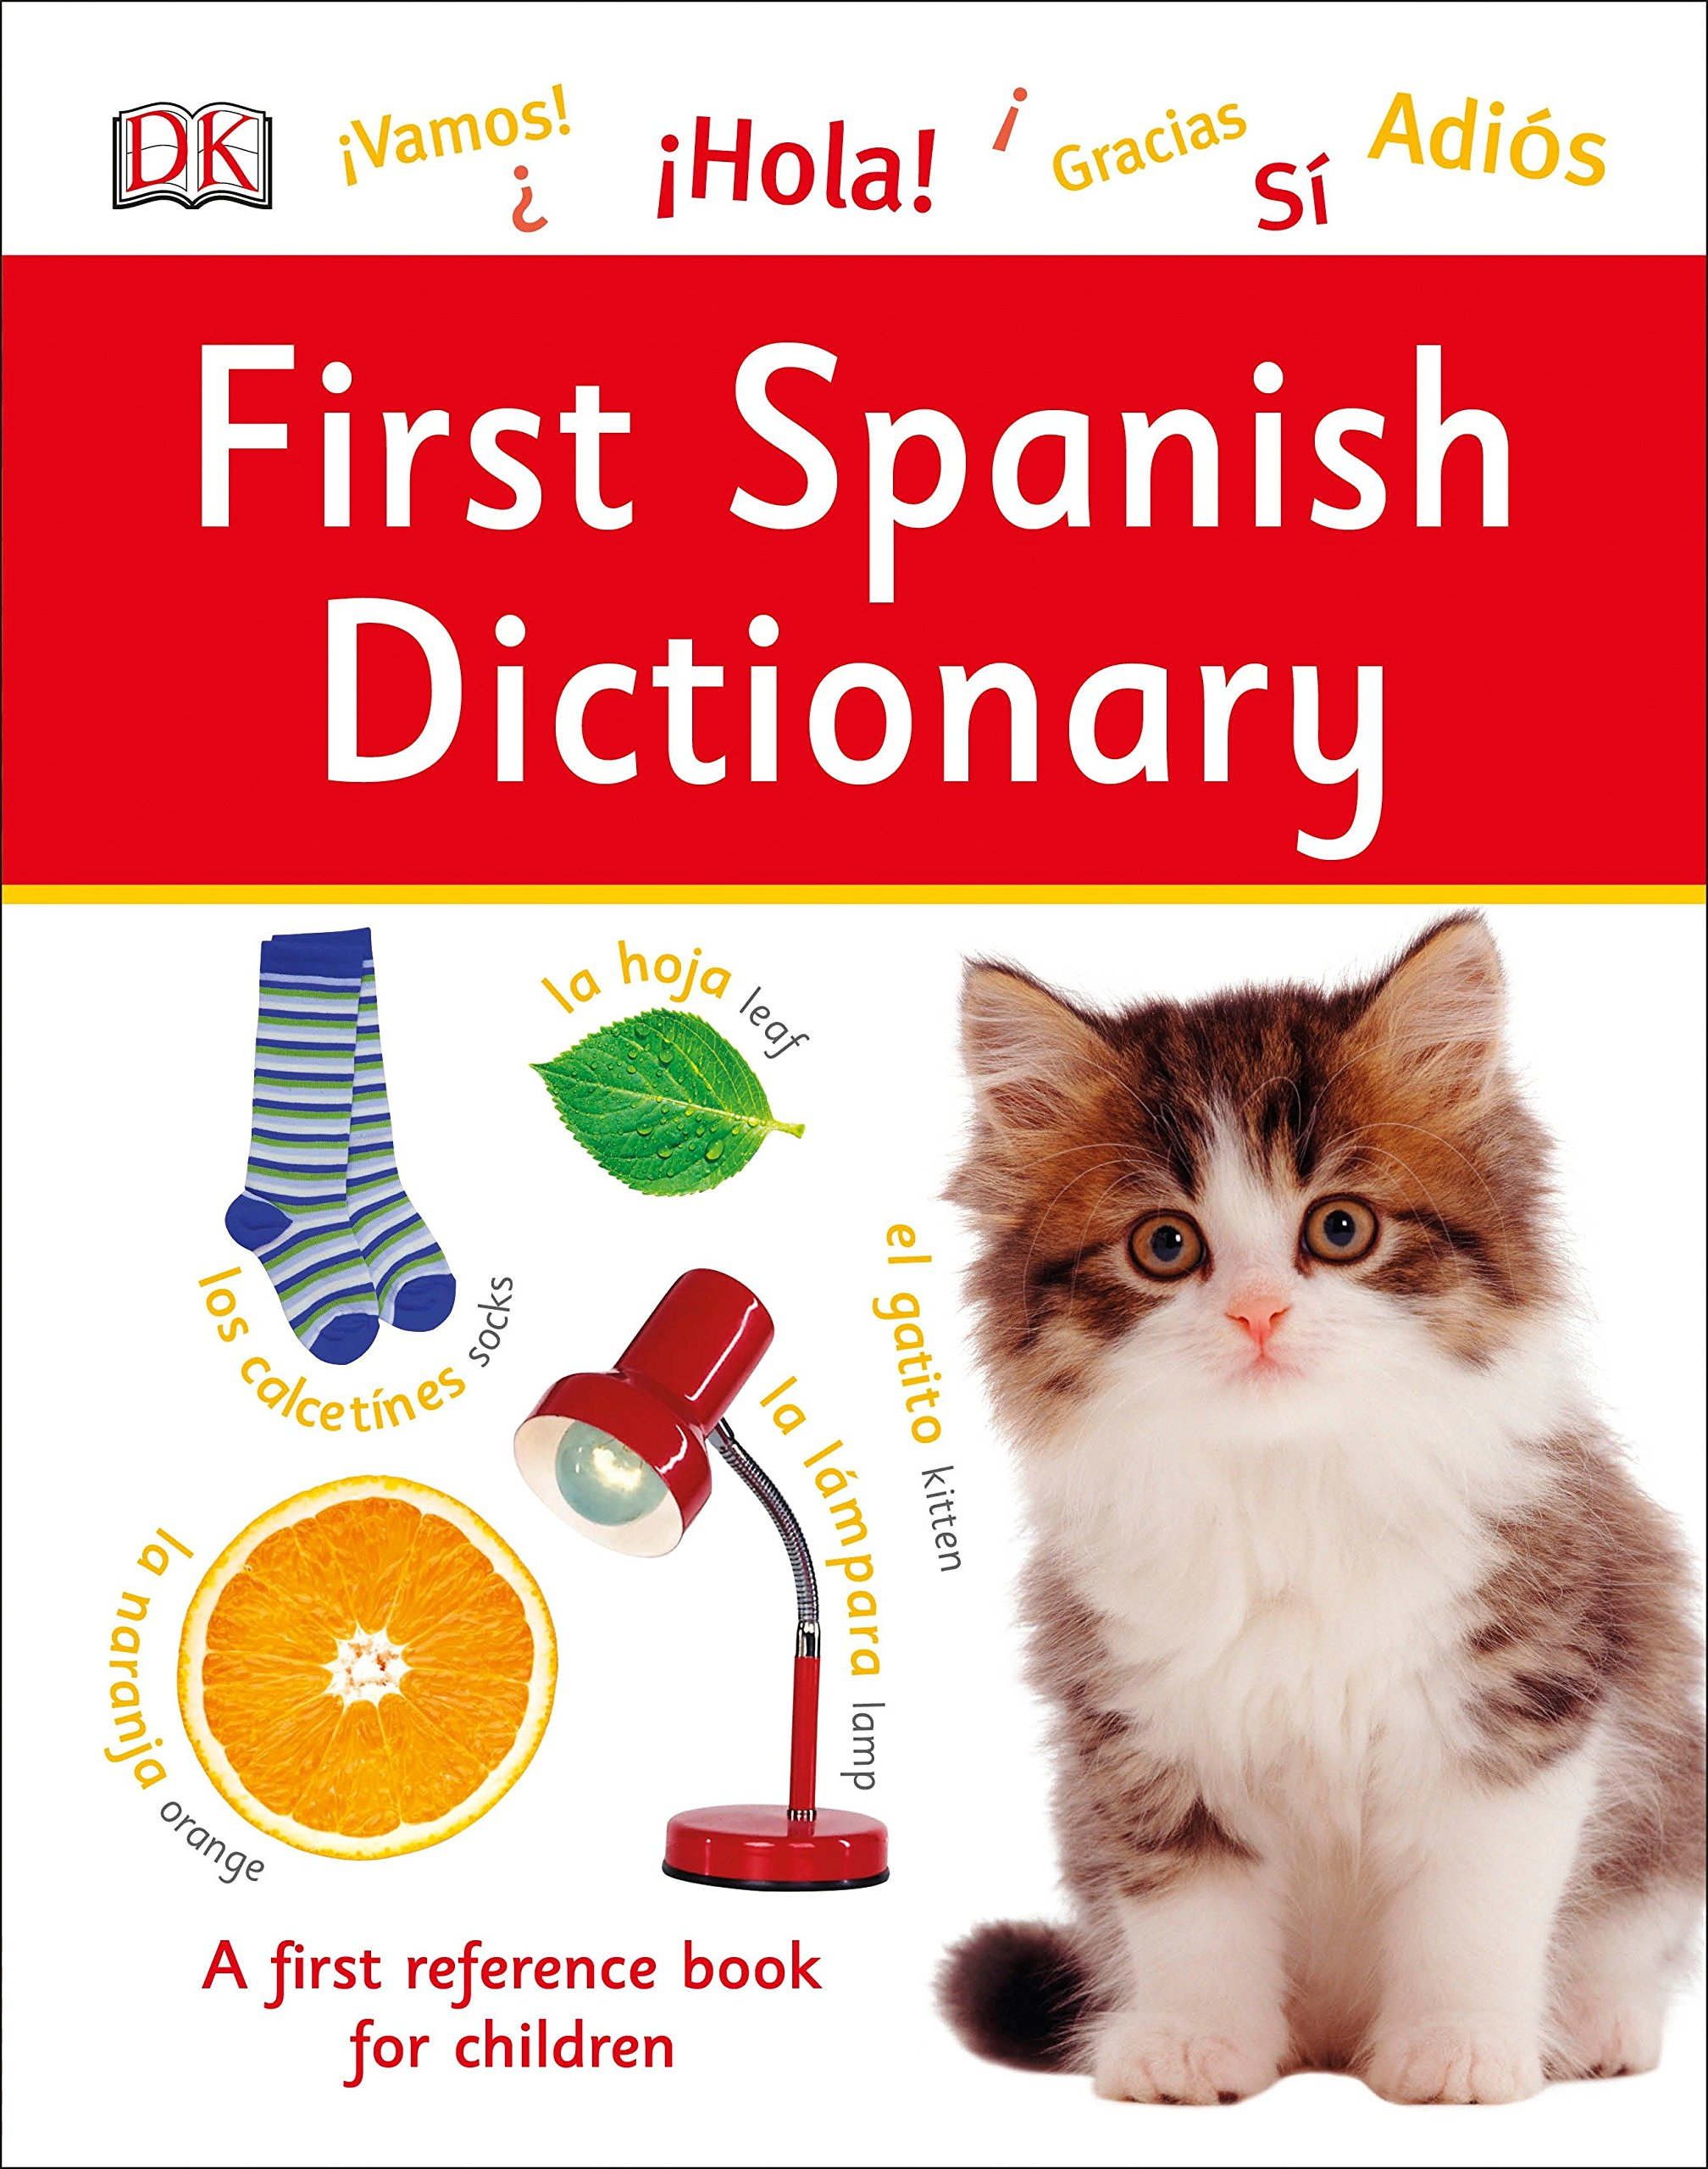 First Spanish Dictionary (DK First Reference): DK: 9781465469496: Amazon.com: Books